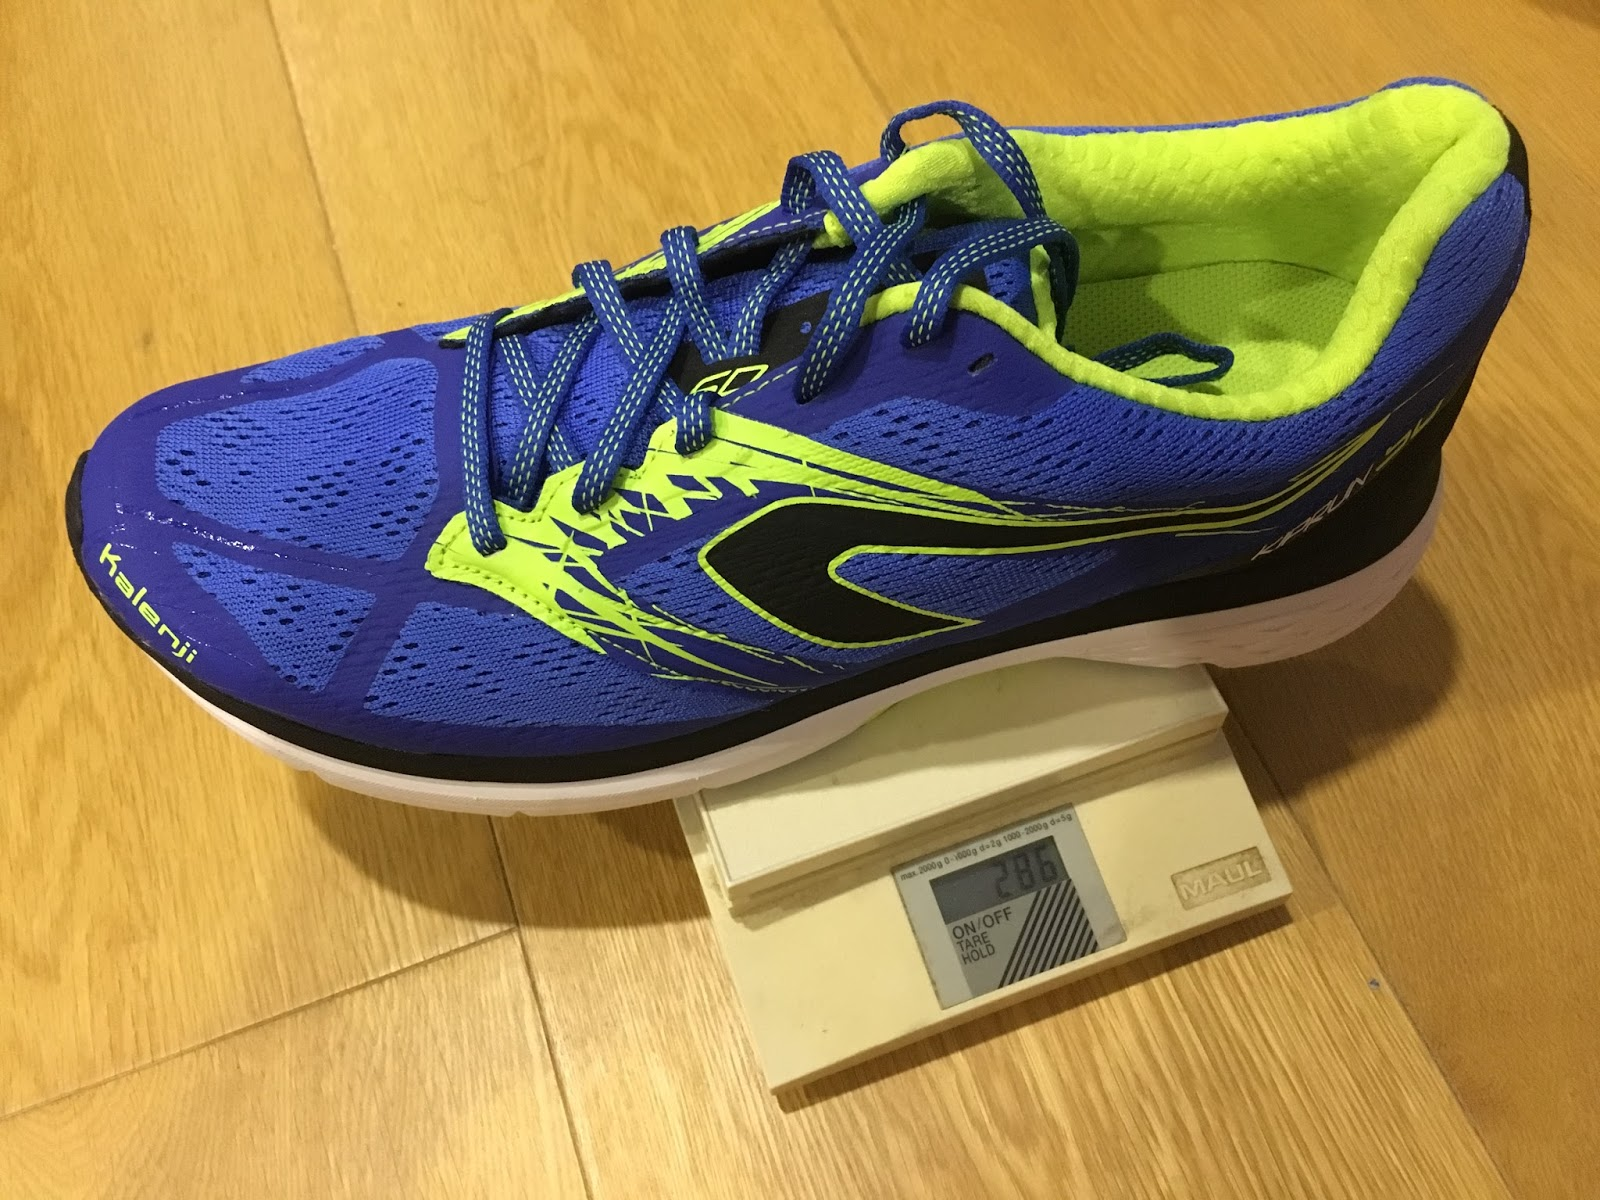 10d1de68d9d The Kalenji Kiprun SD in US9.5 comes in at 286g which is in line with what  the early Brooks Launch models weighed in the same size.